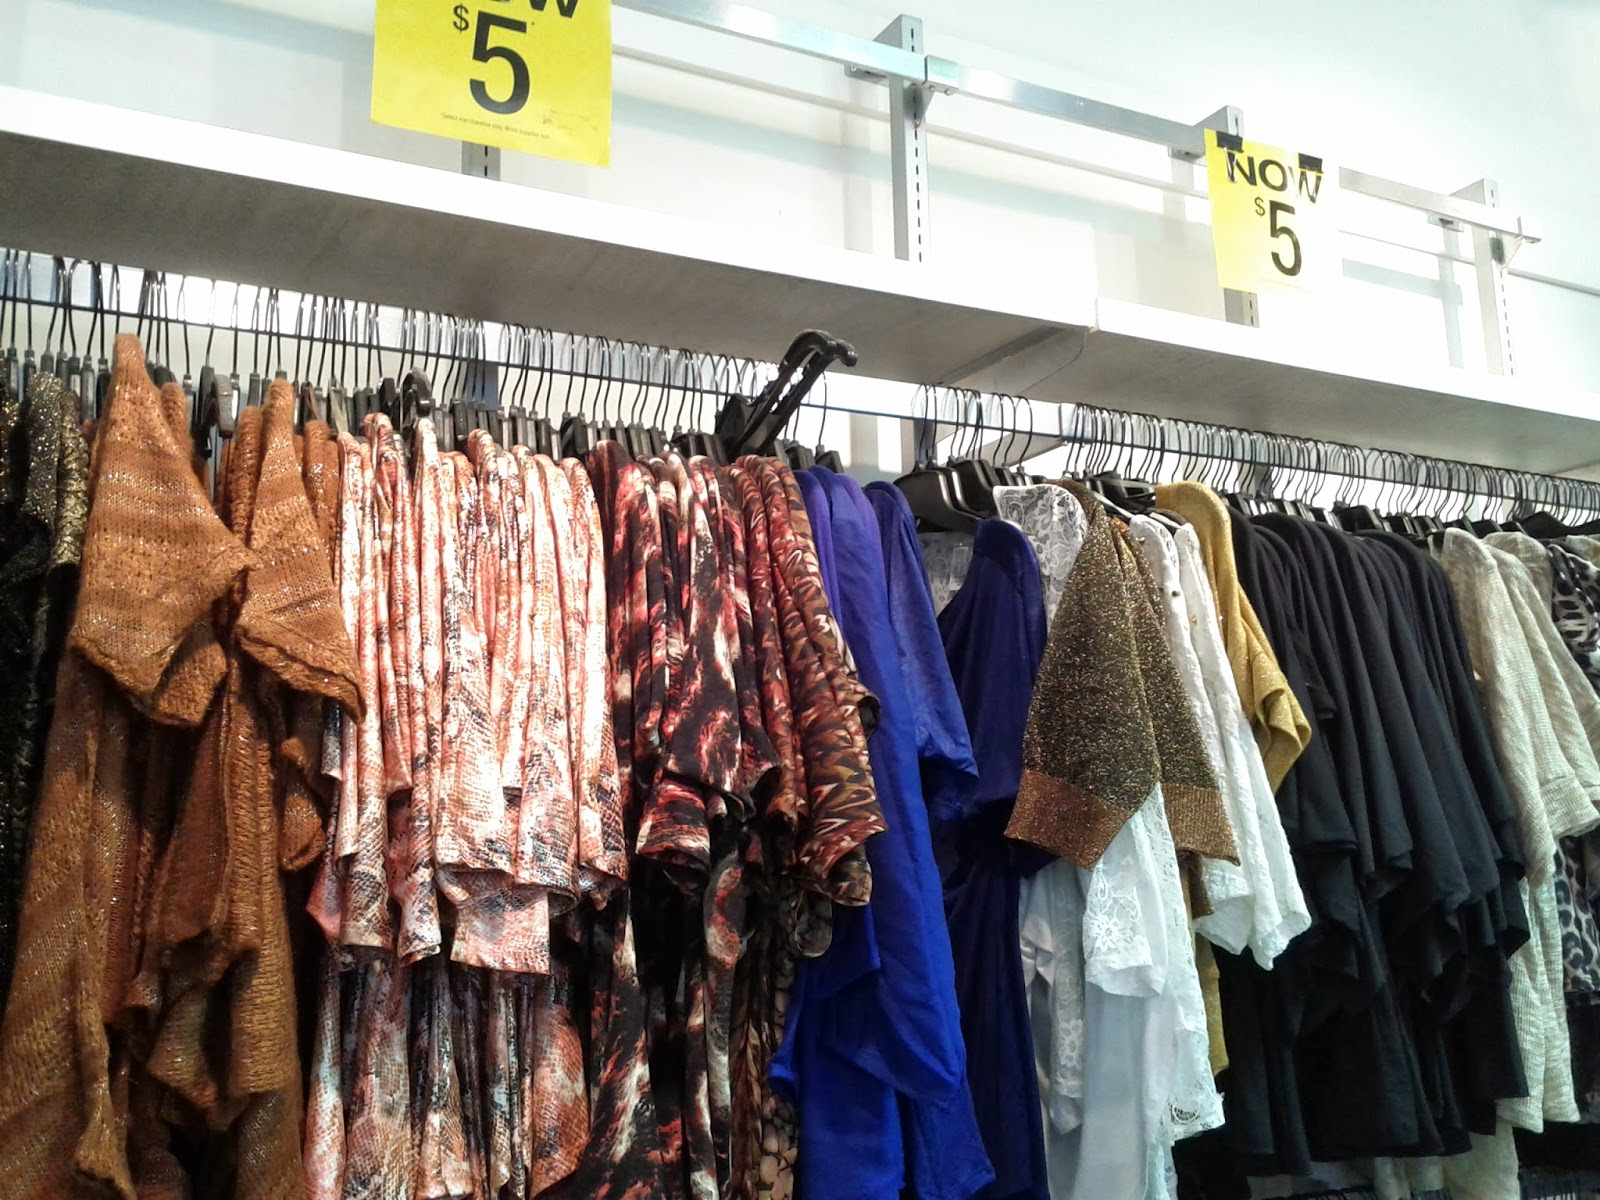 Suzy shier clothing store